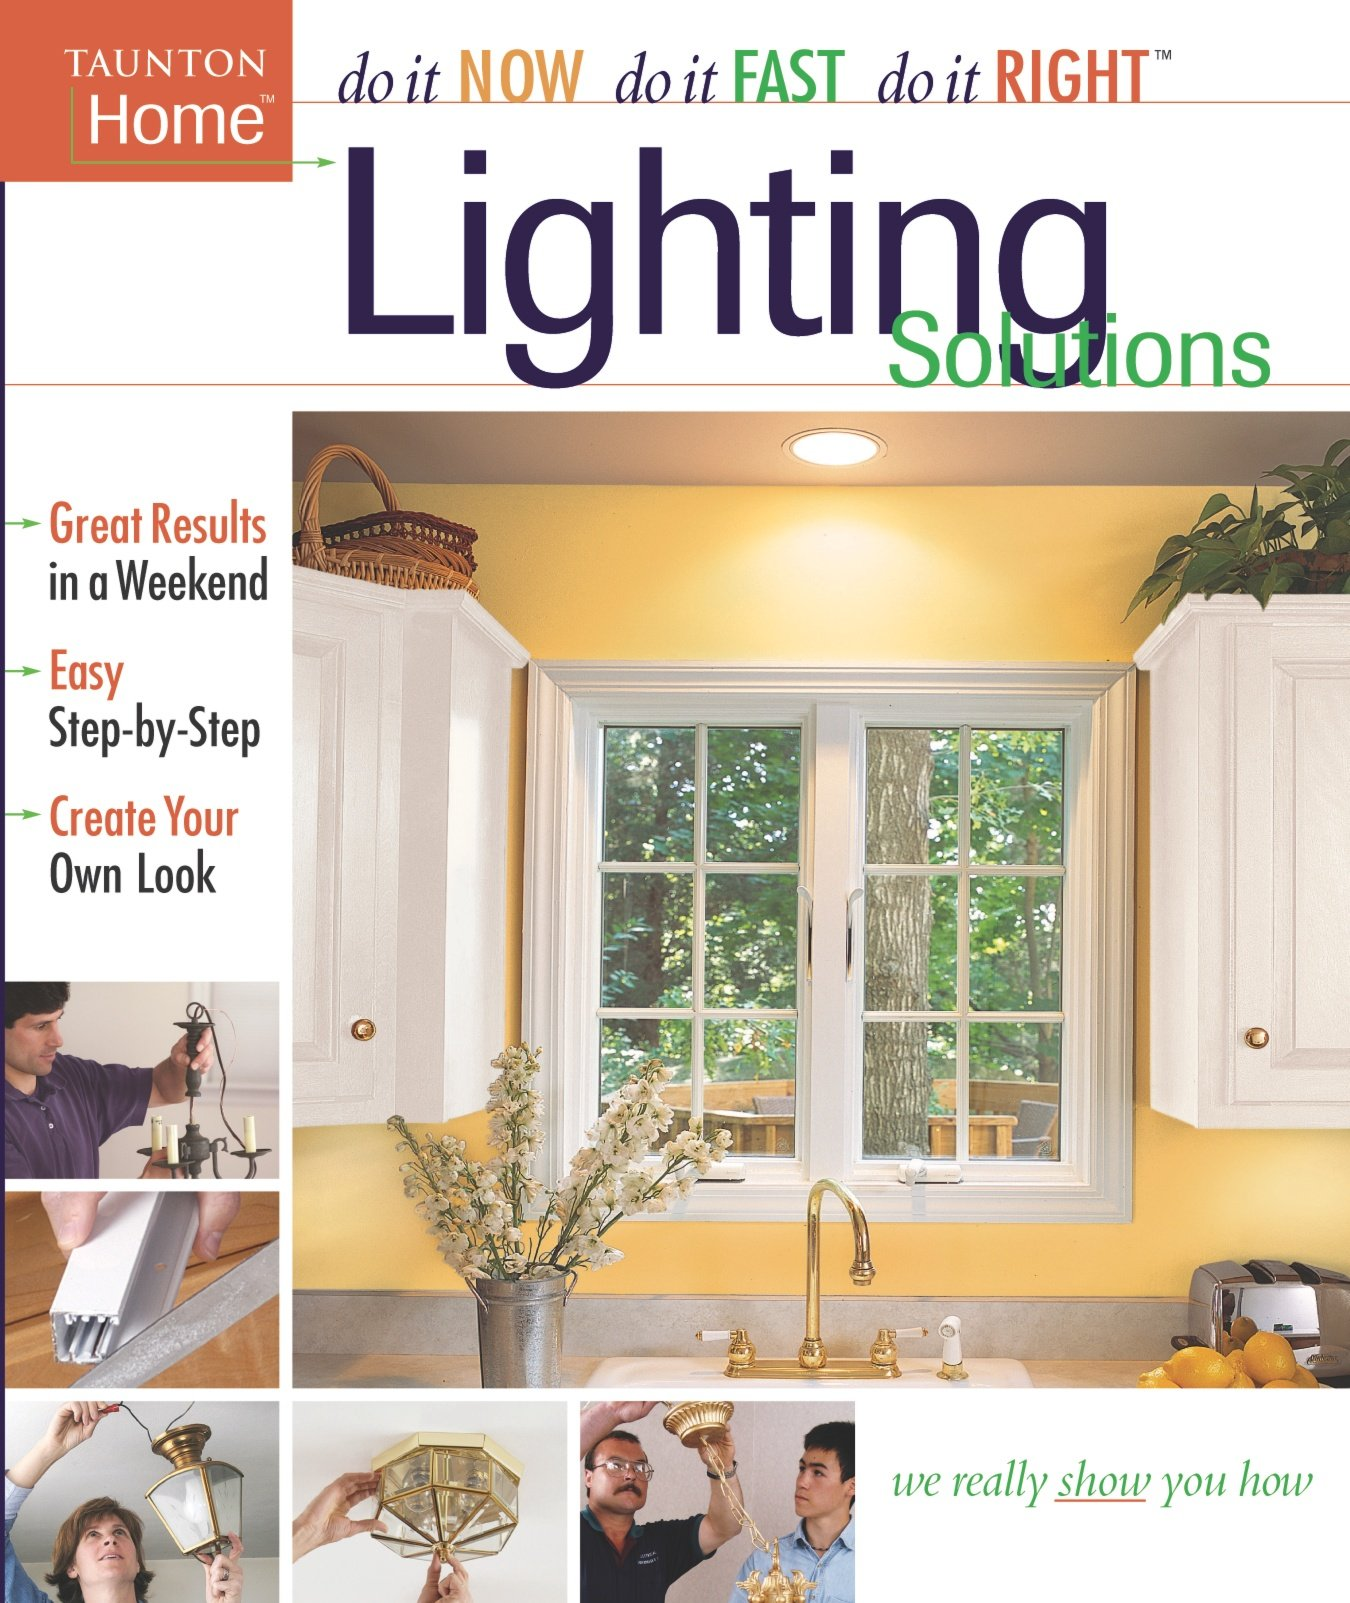 Lighting Solutions (Do It Now Do It Fast Do It Right)